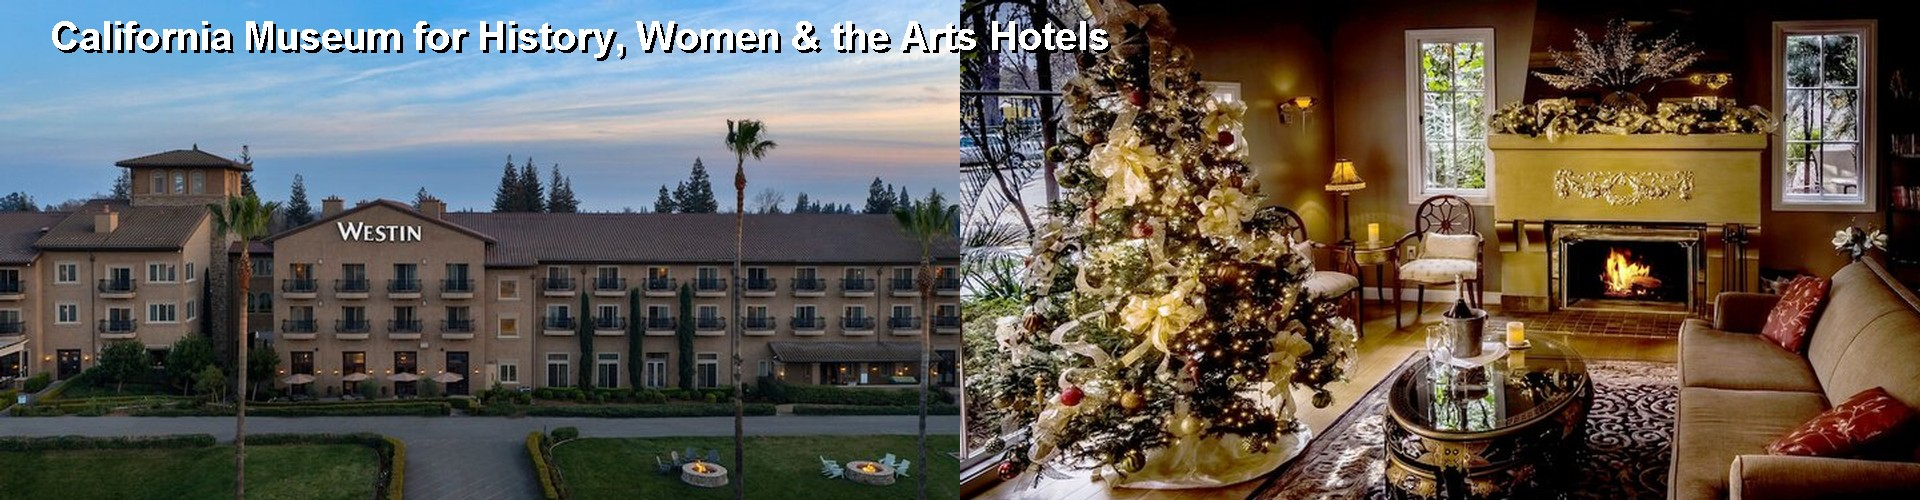 5 Best Hotels near California Museum for History, Women & the Arts